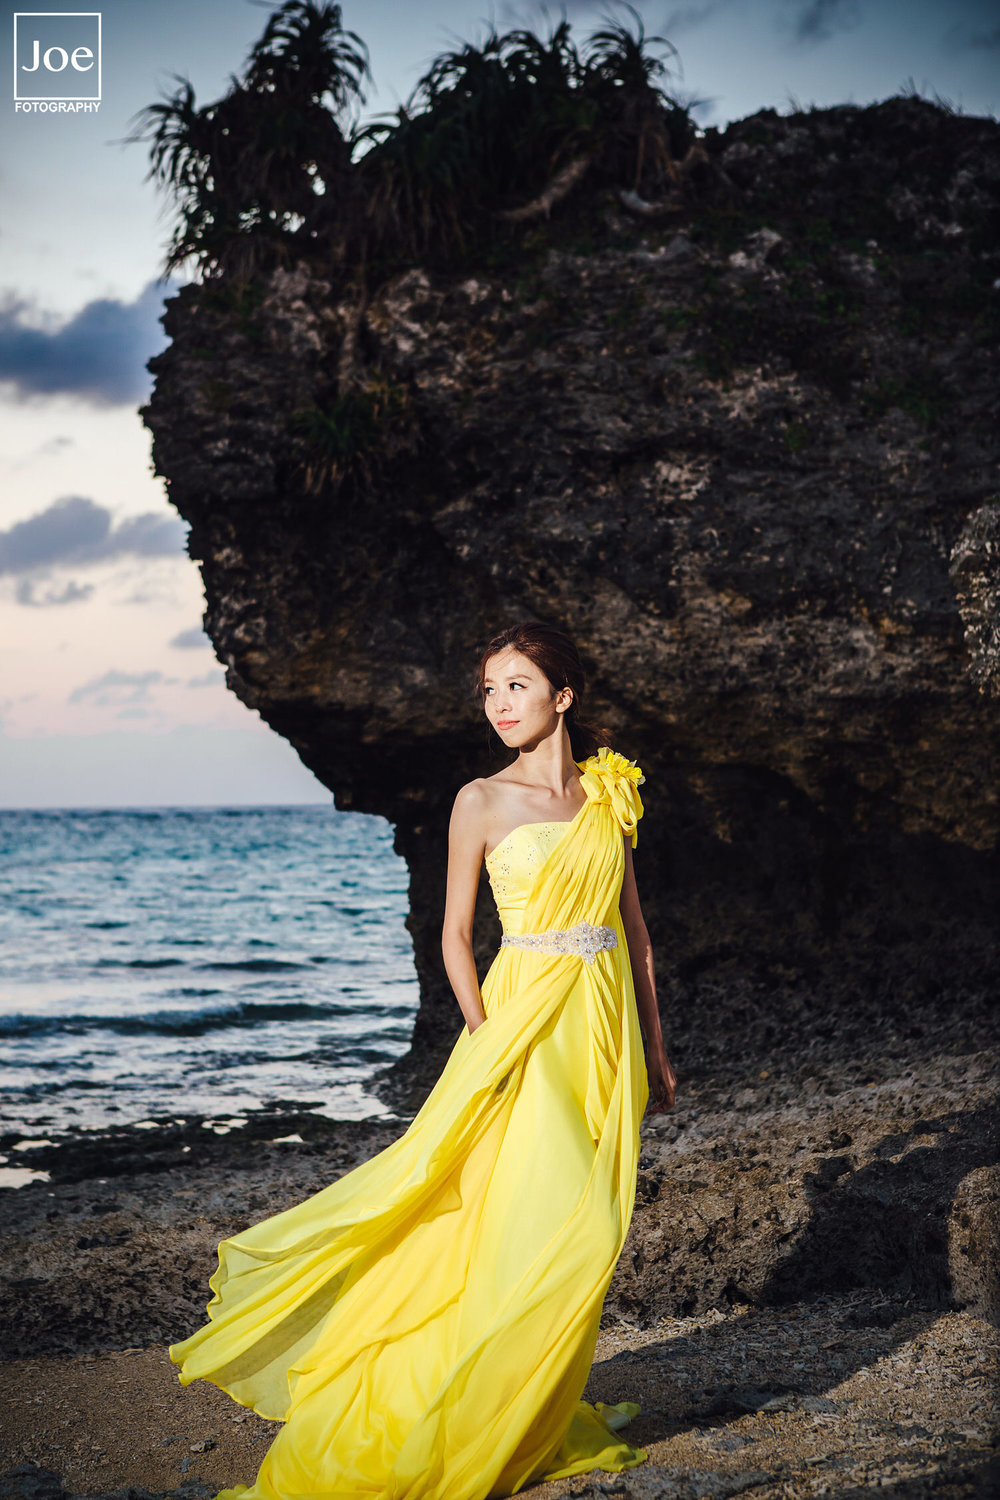 29-okinawa-nirai-beach-pre-wedding-melody-amigo-joe-fotography.jpg